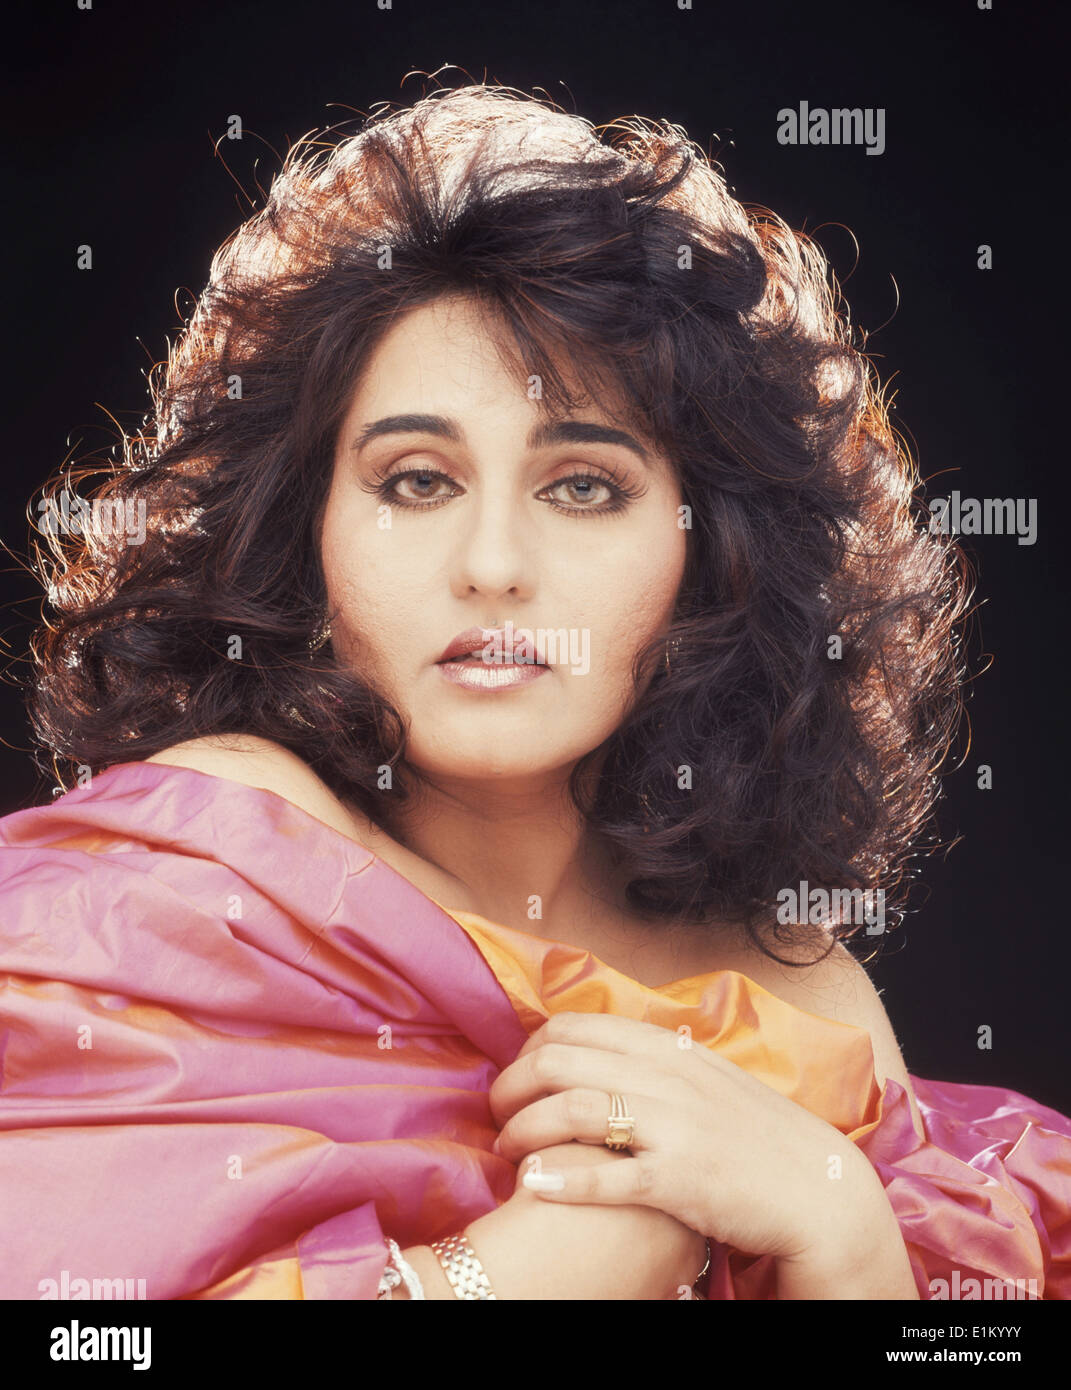 reena roy agereena roy age, reena roy actress, reena roy biography, reena roy daughter, reena roy, reena roy and sonakshi sinha relation, reena roy husband, reena roy songs, reena roy and sonakshi sinha, reena roy and mohsin khan, reena roy daughter sonakshi sinha, reena roy wikipedia, reena roy movies list, reena roy images, reena roy sonakshi sinha mother, reena roy daughter sanam, reena roy family, reena roy and sonakshi similarity, reena roy movies, reena roy husband photos